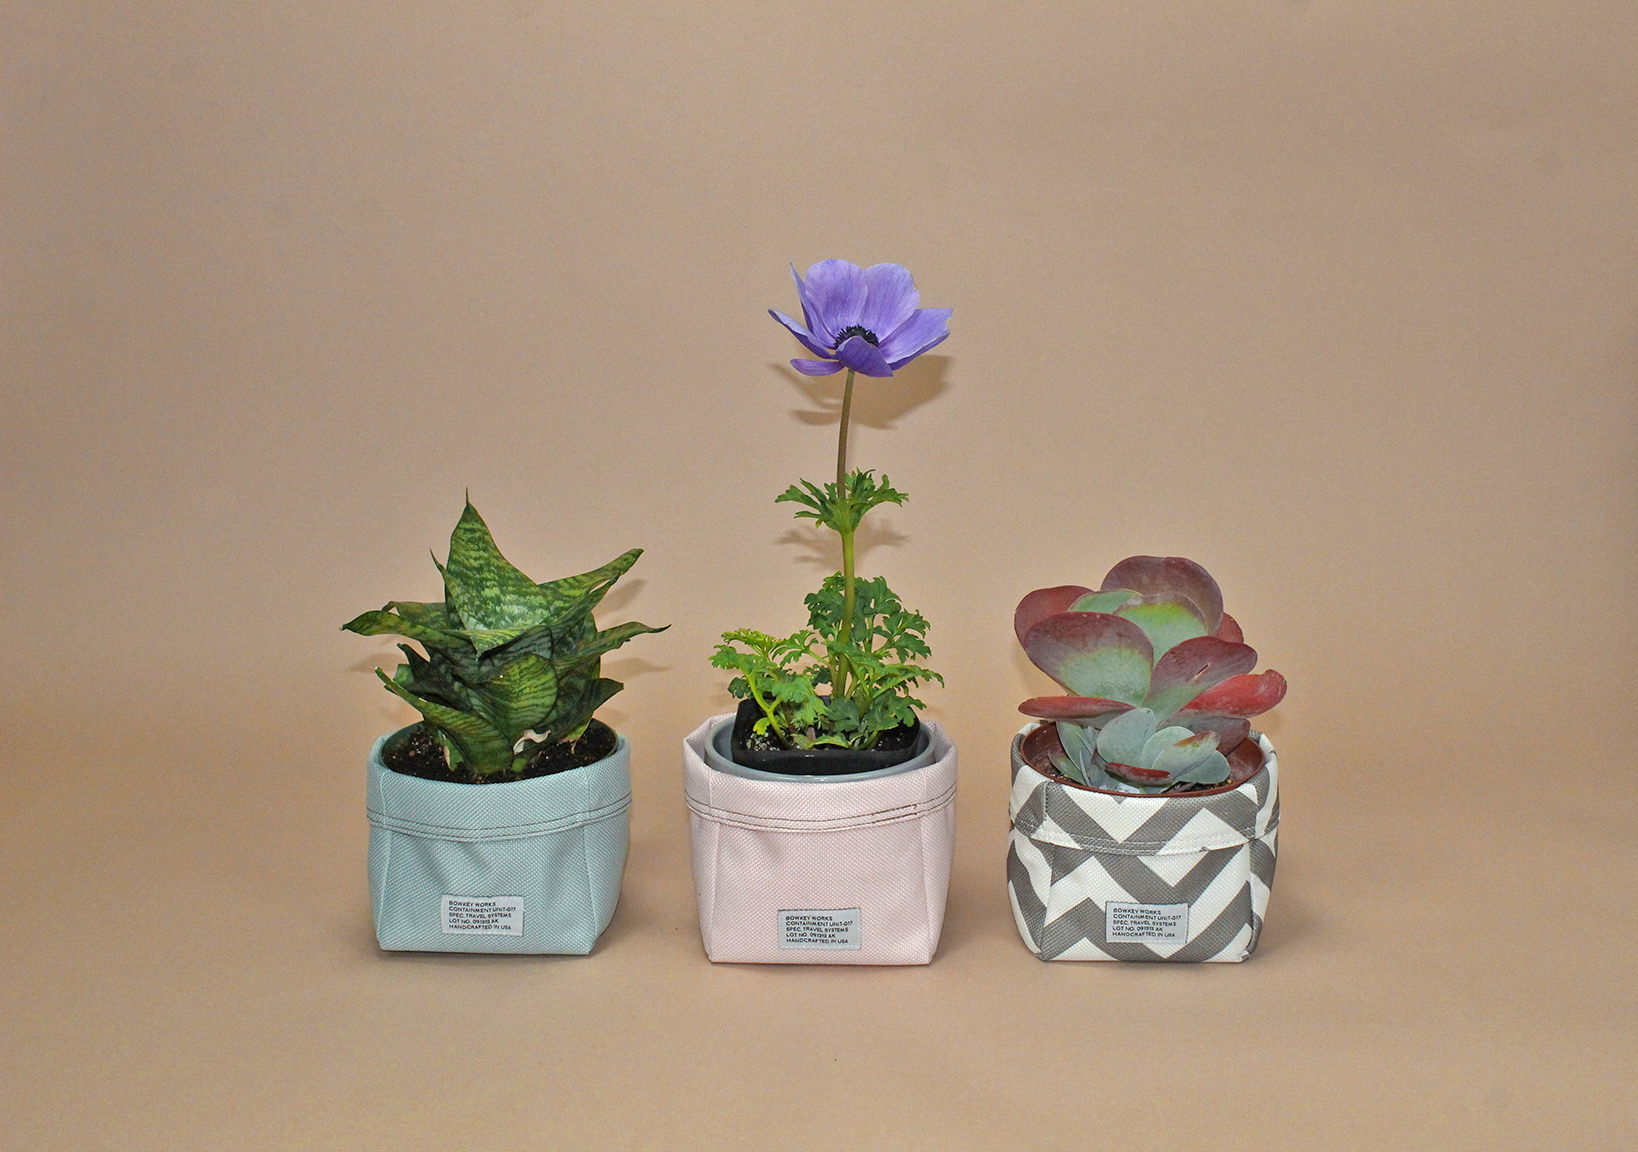 Nylon Fabric Baskets - REVERSIBLE NYLON WATER RESISTANT! STORAGE BIN, PLANT POT COVER, BATHROOM STORAGE. MADE IN USA.